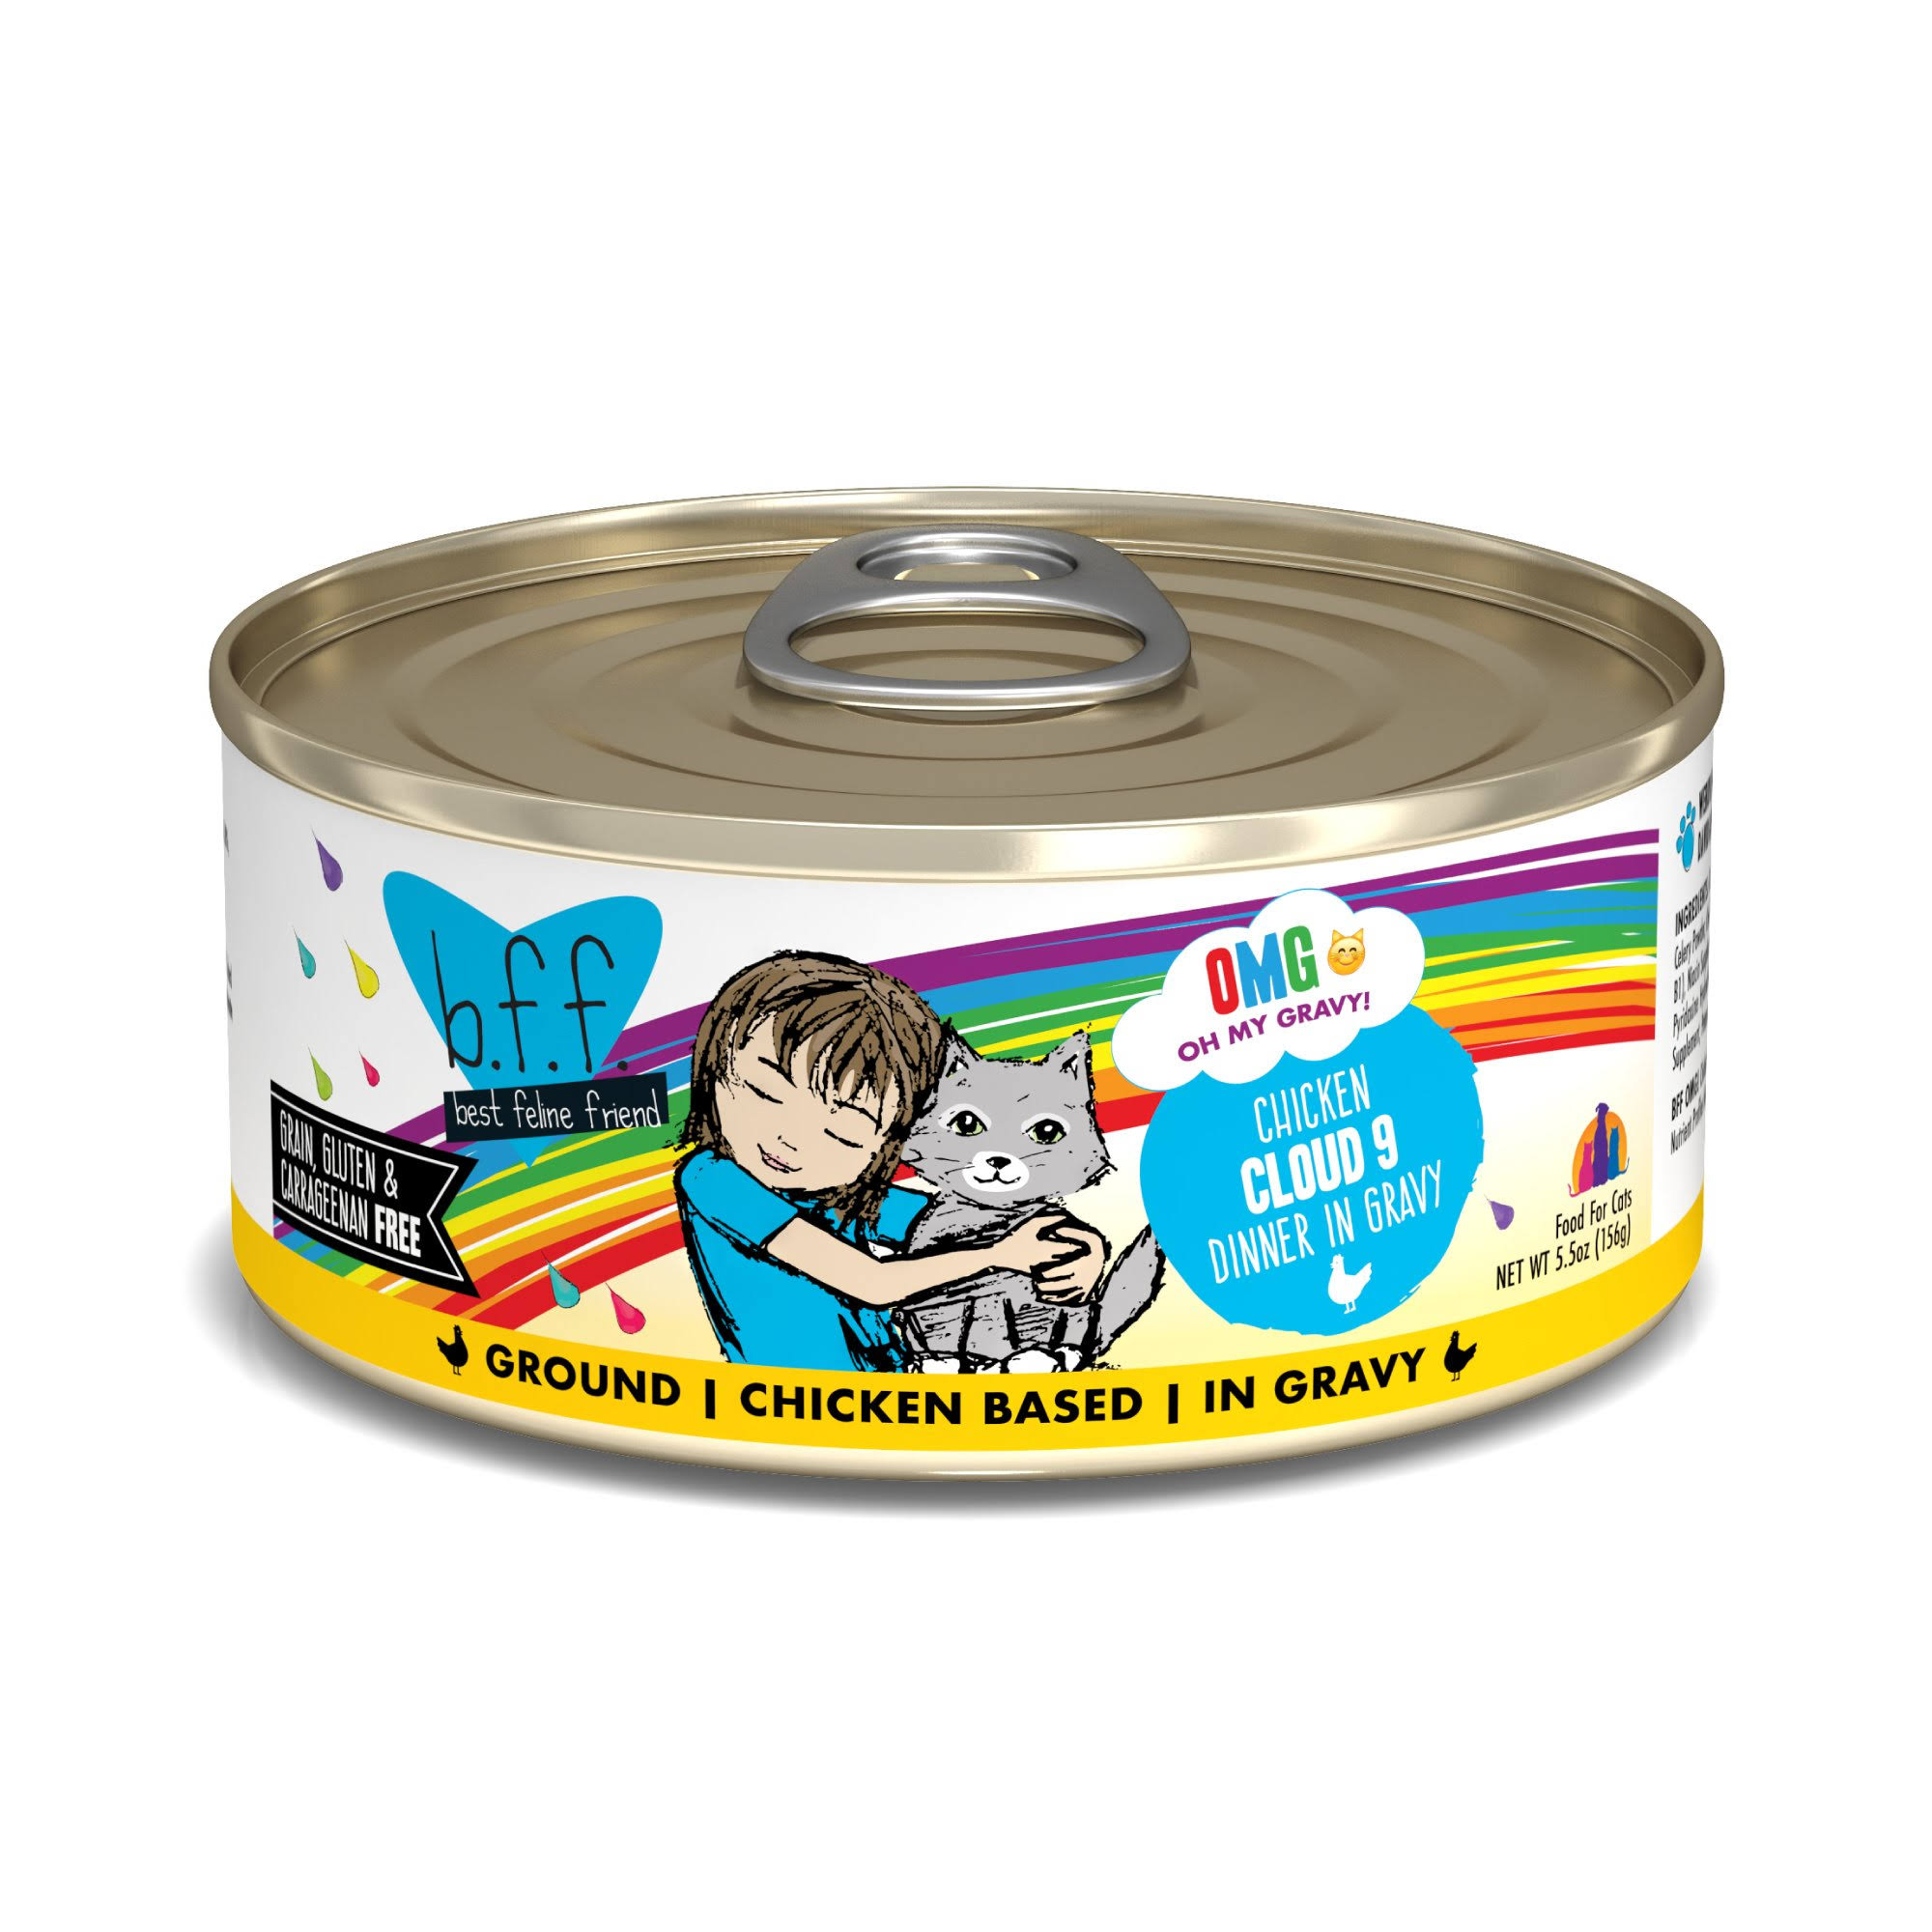 B.f.f. OMG Chicken Cloud 9 Dinner in Gravy OMG Food for Cats - 5.5 oz